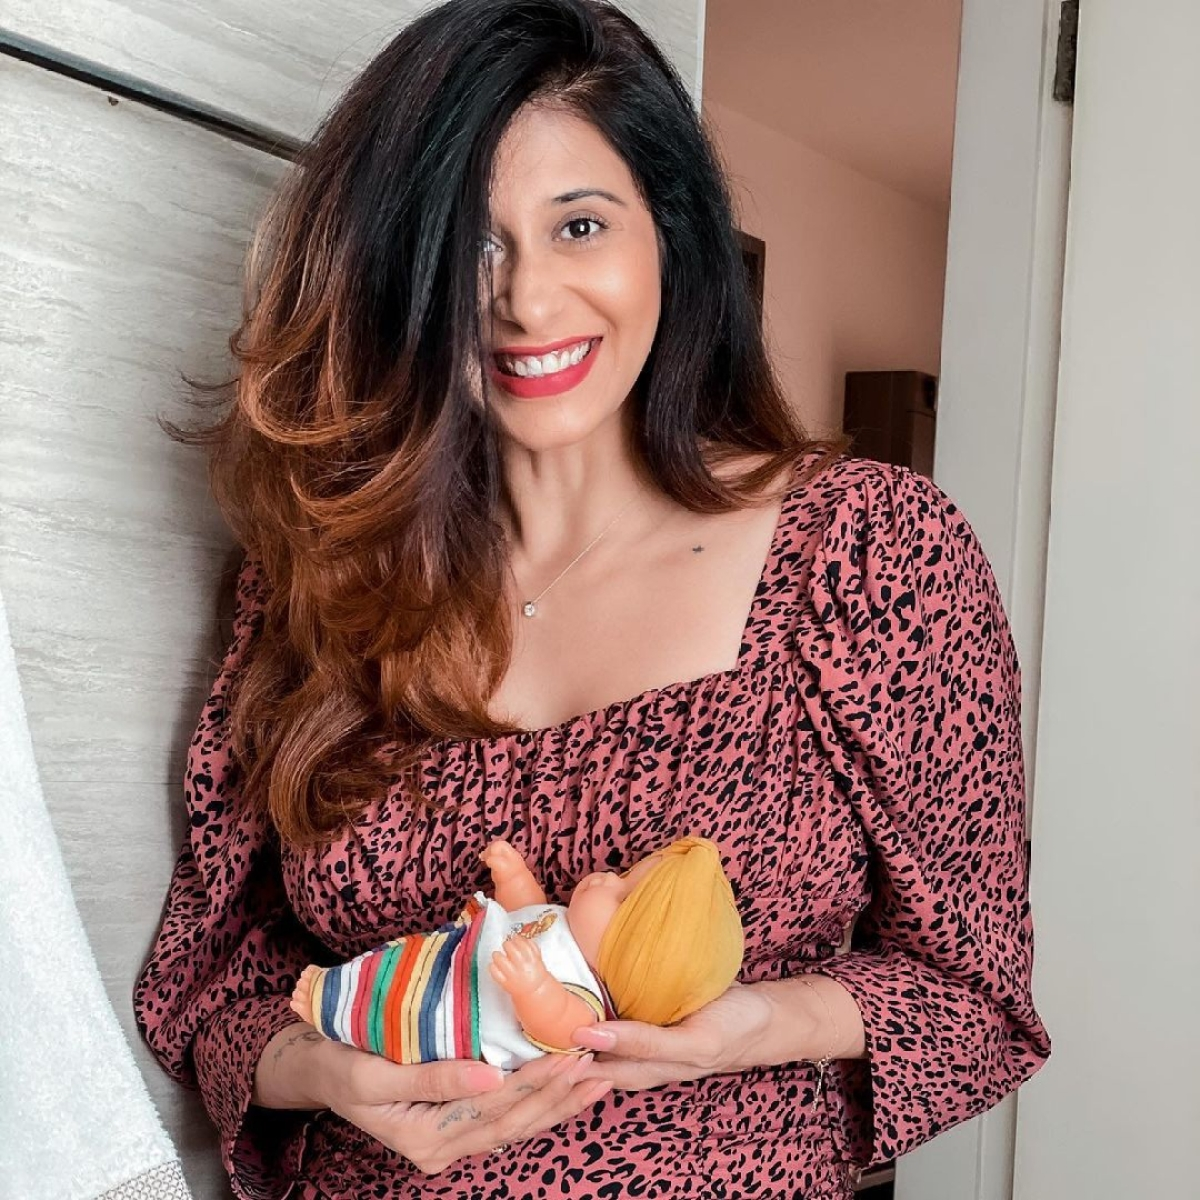 'For my sanity and my baby': Mom-to-be Kishwer Merchantt will stay away from news that makes her 'anxious'